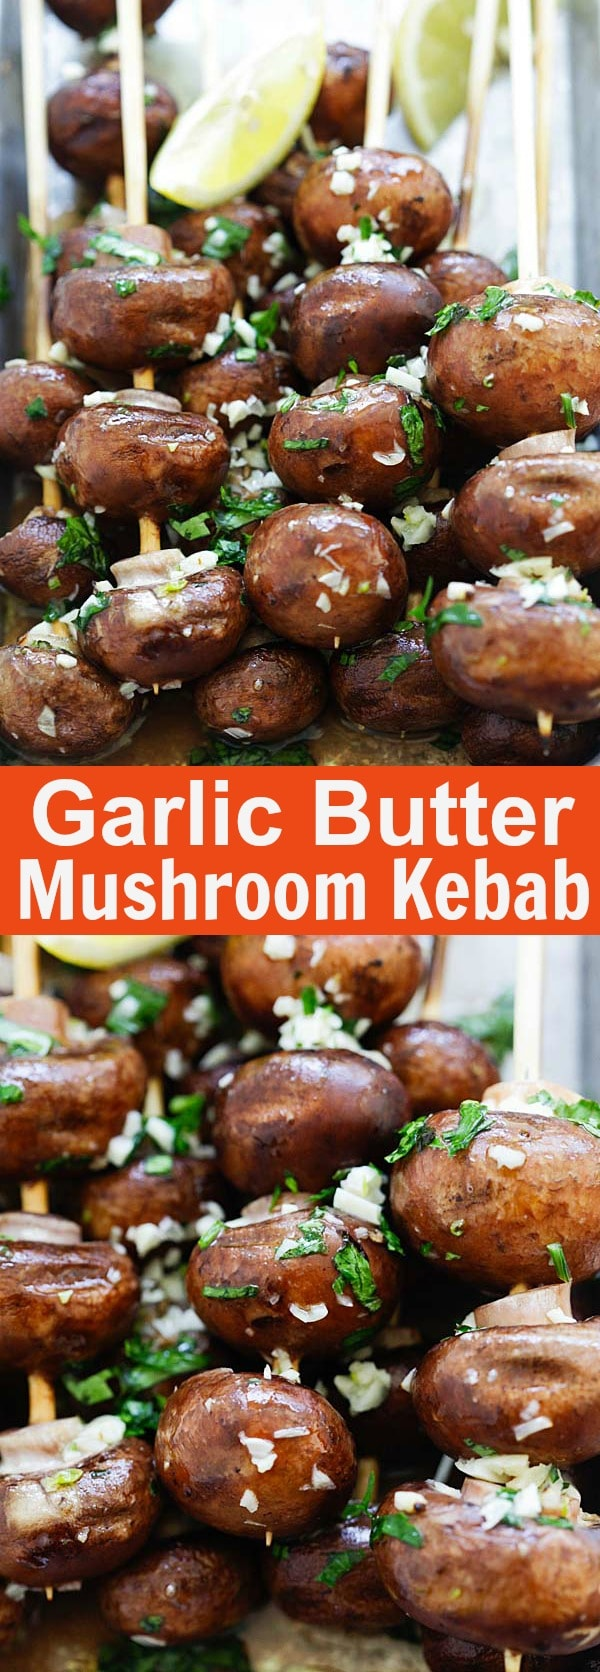 Garlic Butter Mushroom Kebab - easy grilled mushroom recipe with garlic herb butter marinade. Thread the mushrooms into mushroom skewers and grill for 5 mins | rasamalaysia.com